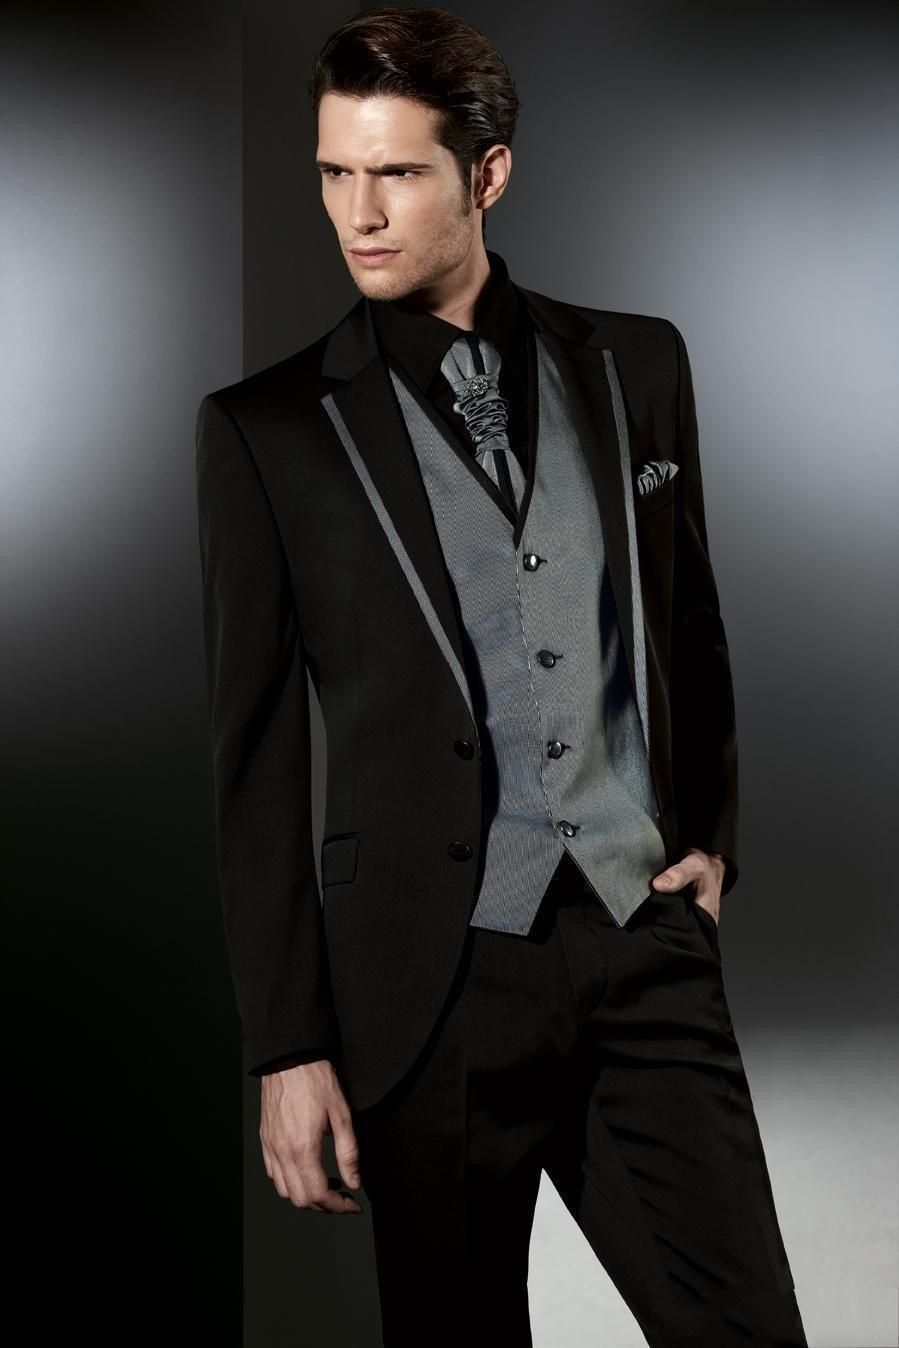 994129bae47f7 black silver tuxedo - Google Search. black silver tuxedo - Google Search  Prom Tux Rental, Slim Fit ...